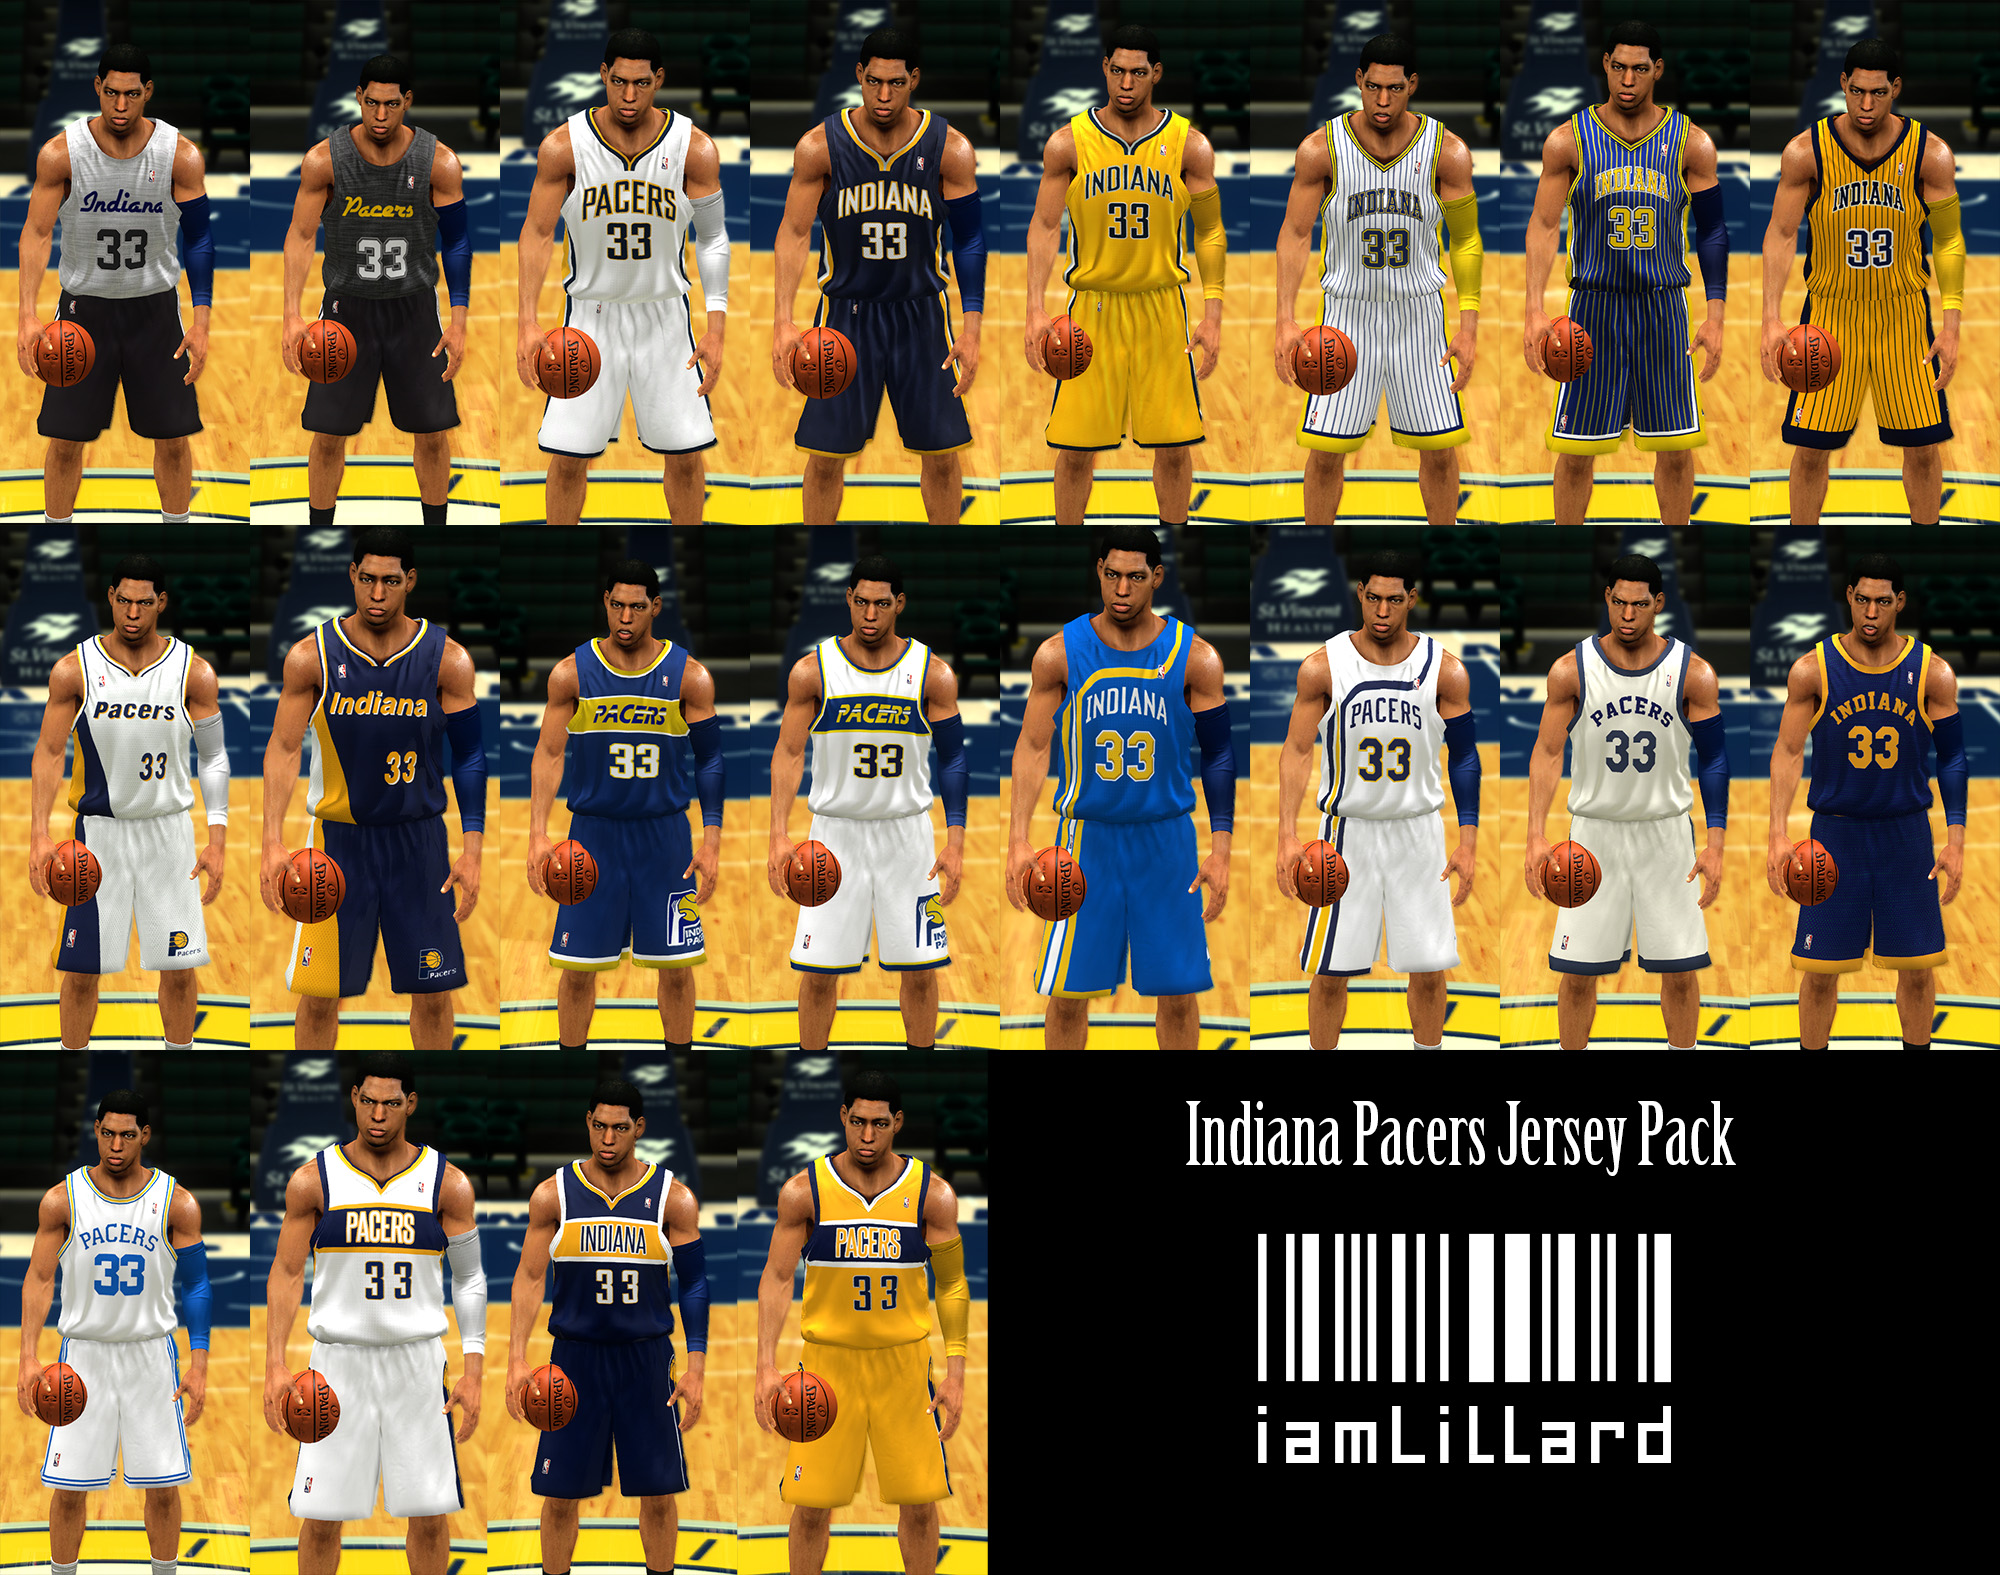 UJP Indiana Pacers Jersey